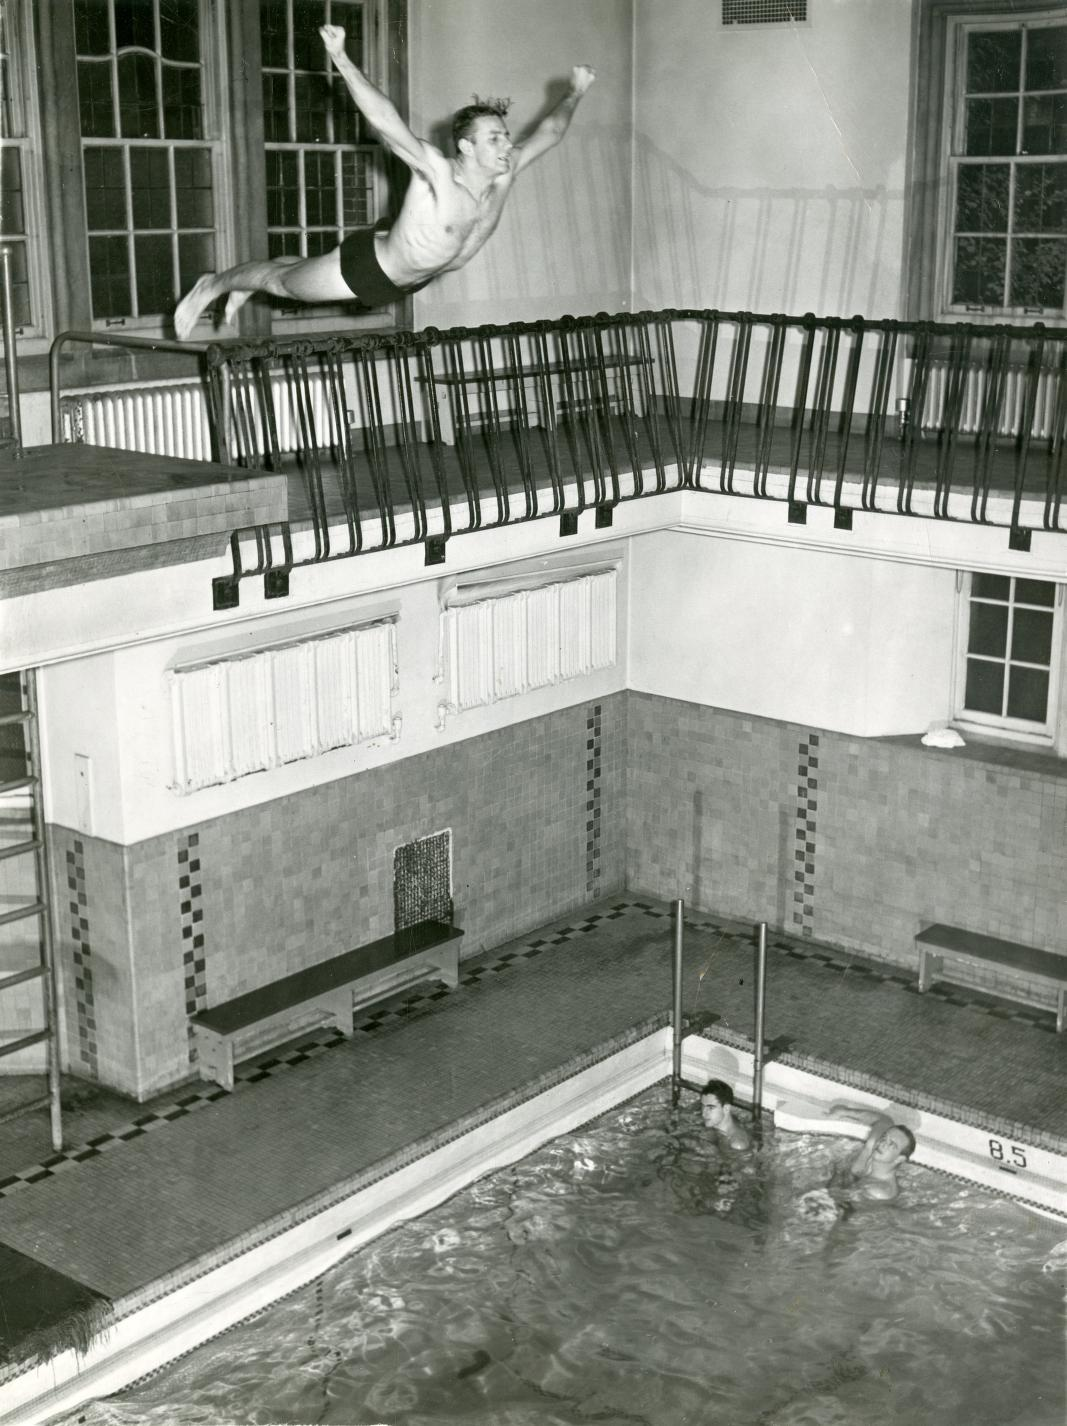 … and recreation. What good is a second floor above the water if you can't dive from it?